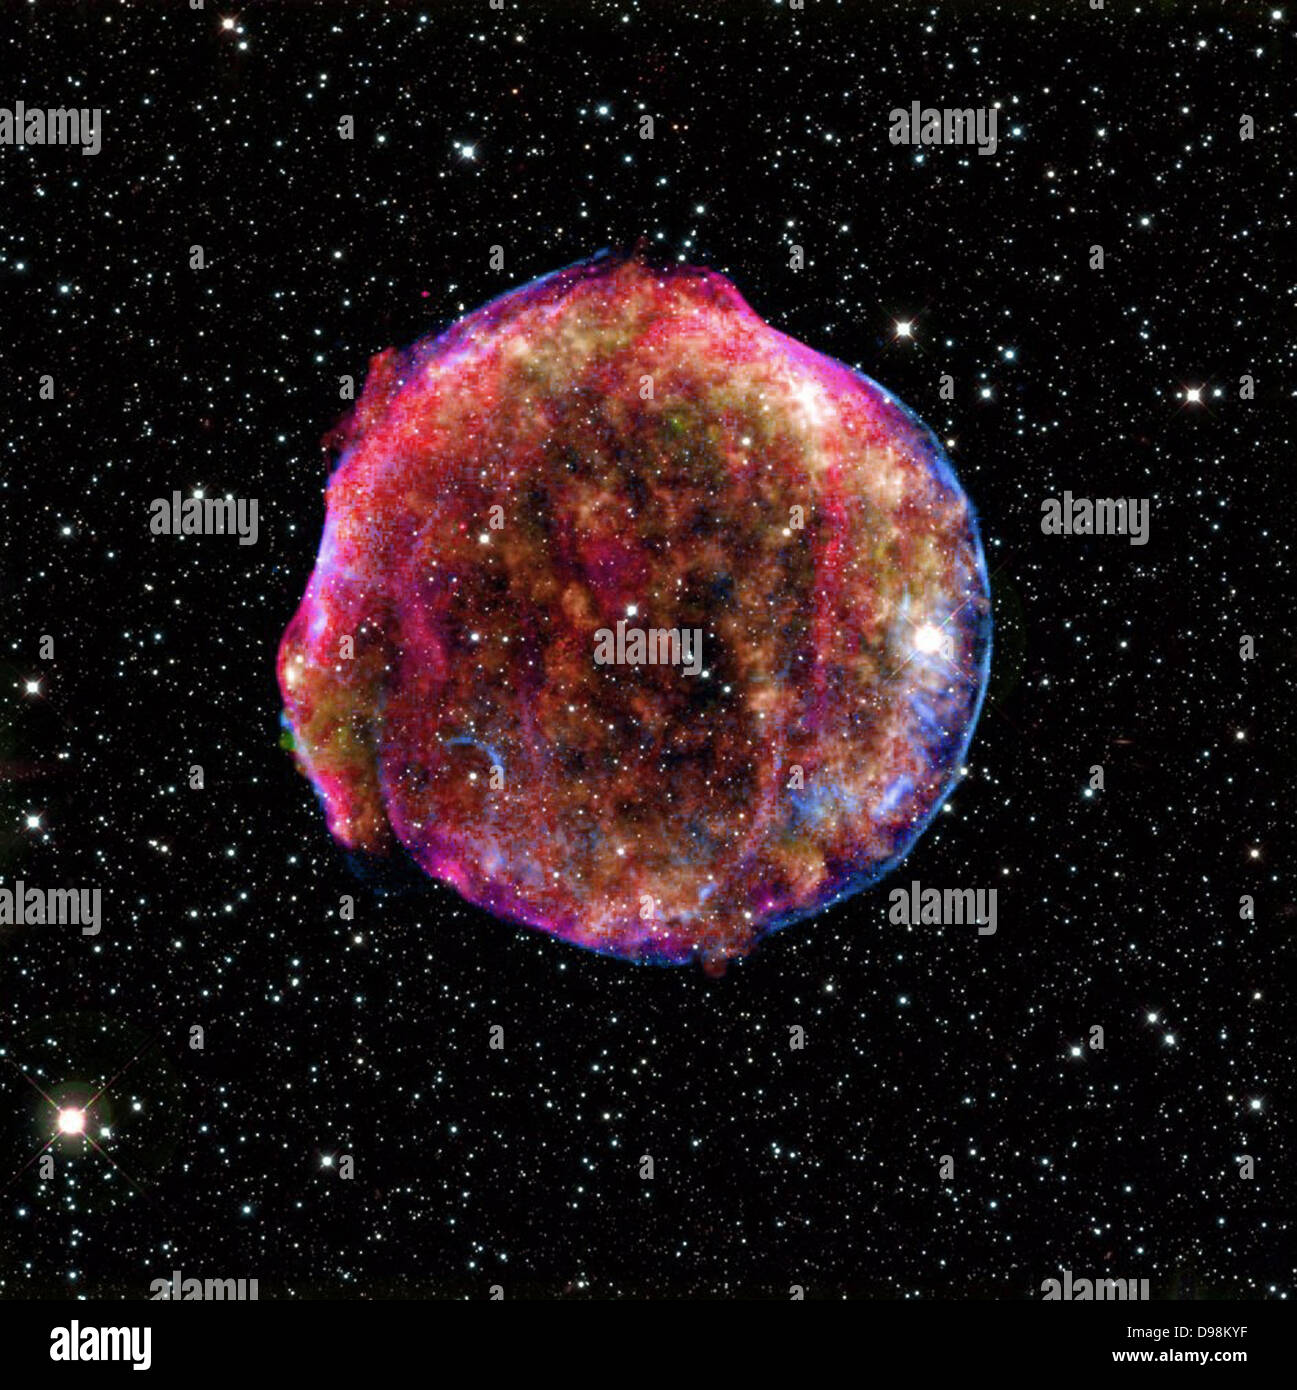 composite image of the Tycho supernova remnant combines infrared and X-ray observations obtained with NASA's - Stock Image